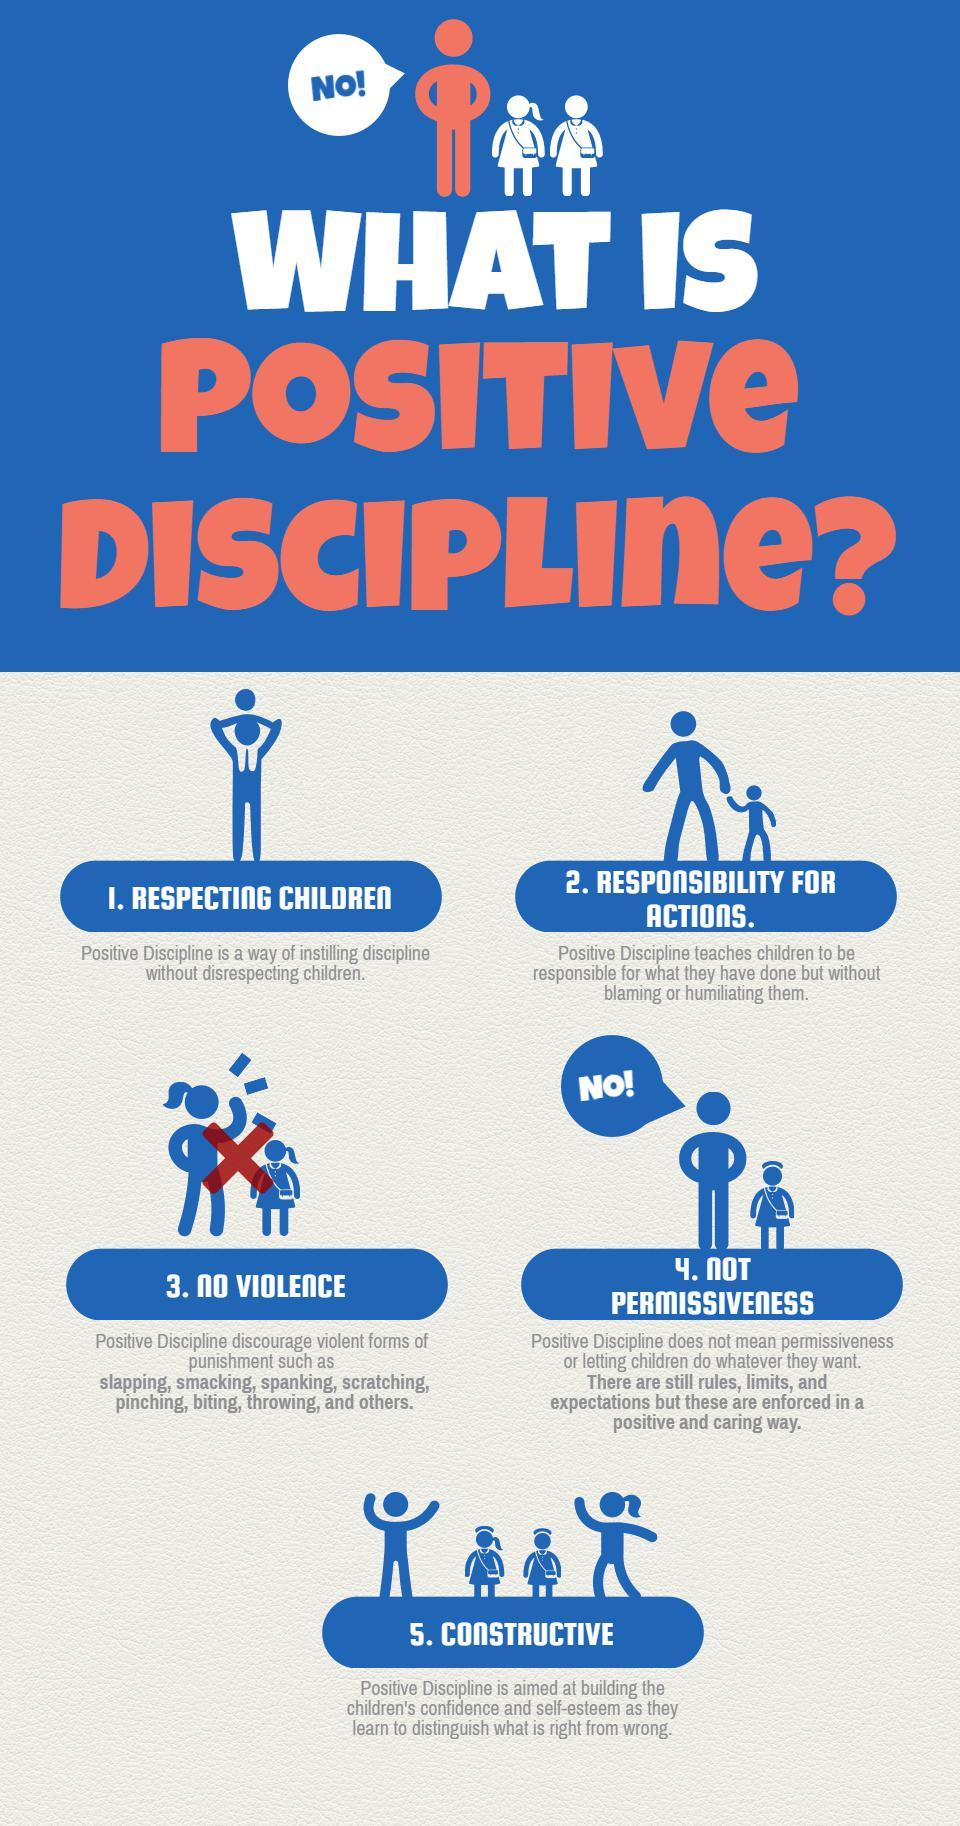 What is Positive Discipline? | Lifestyle | GMA News Online